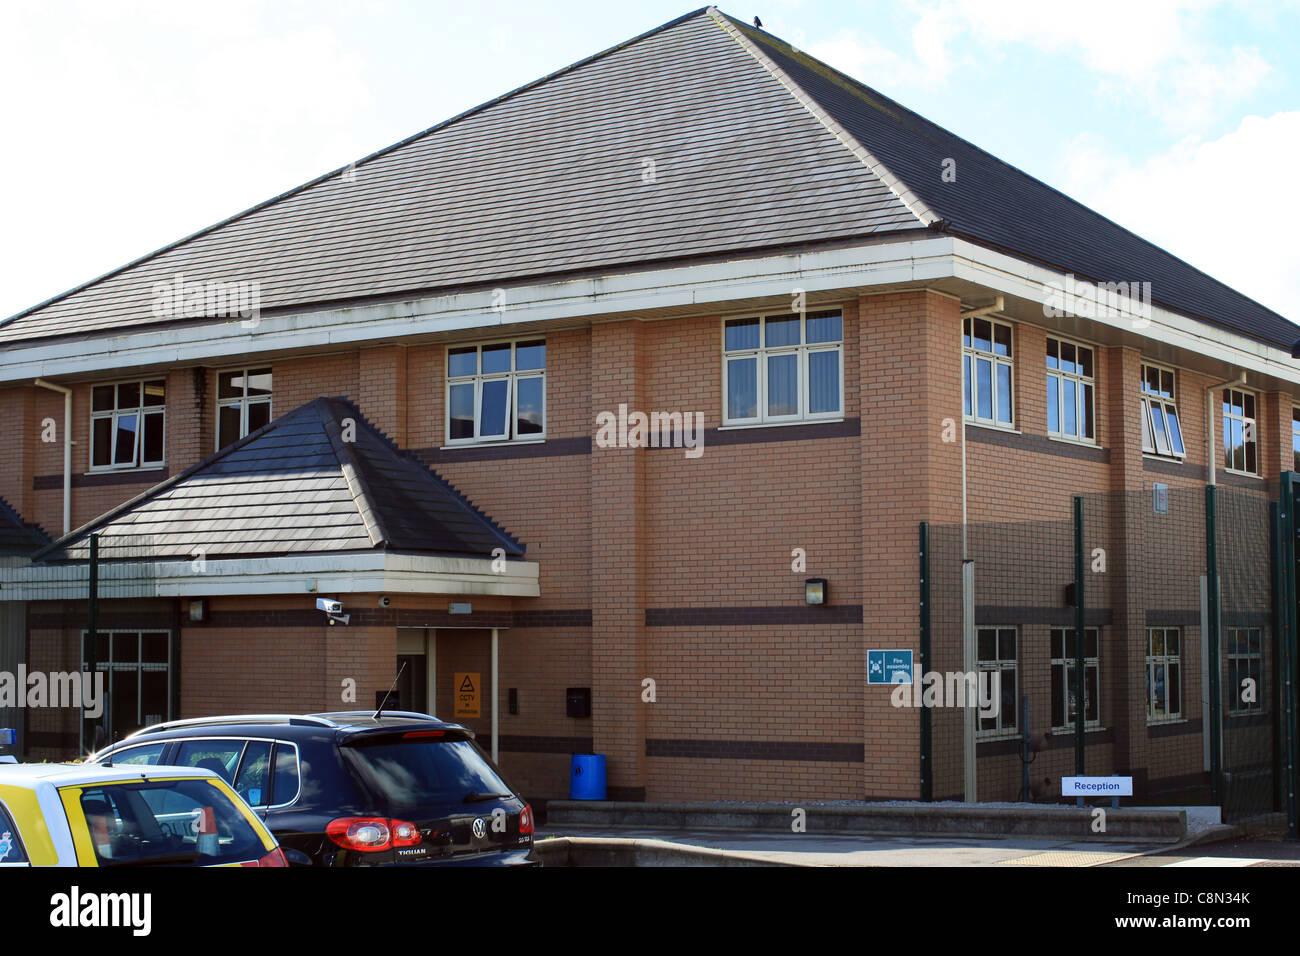 stoke on trent north staffordshire police custody suite in etruria,stoke on trent - Stock Image